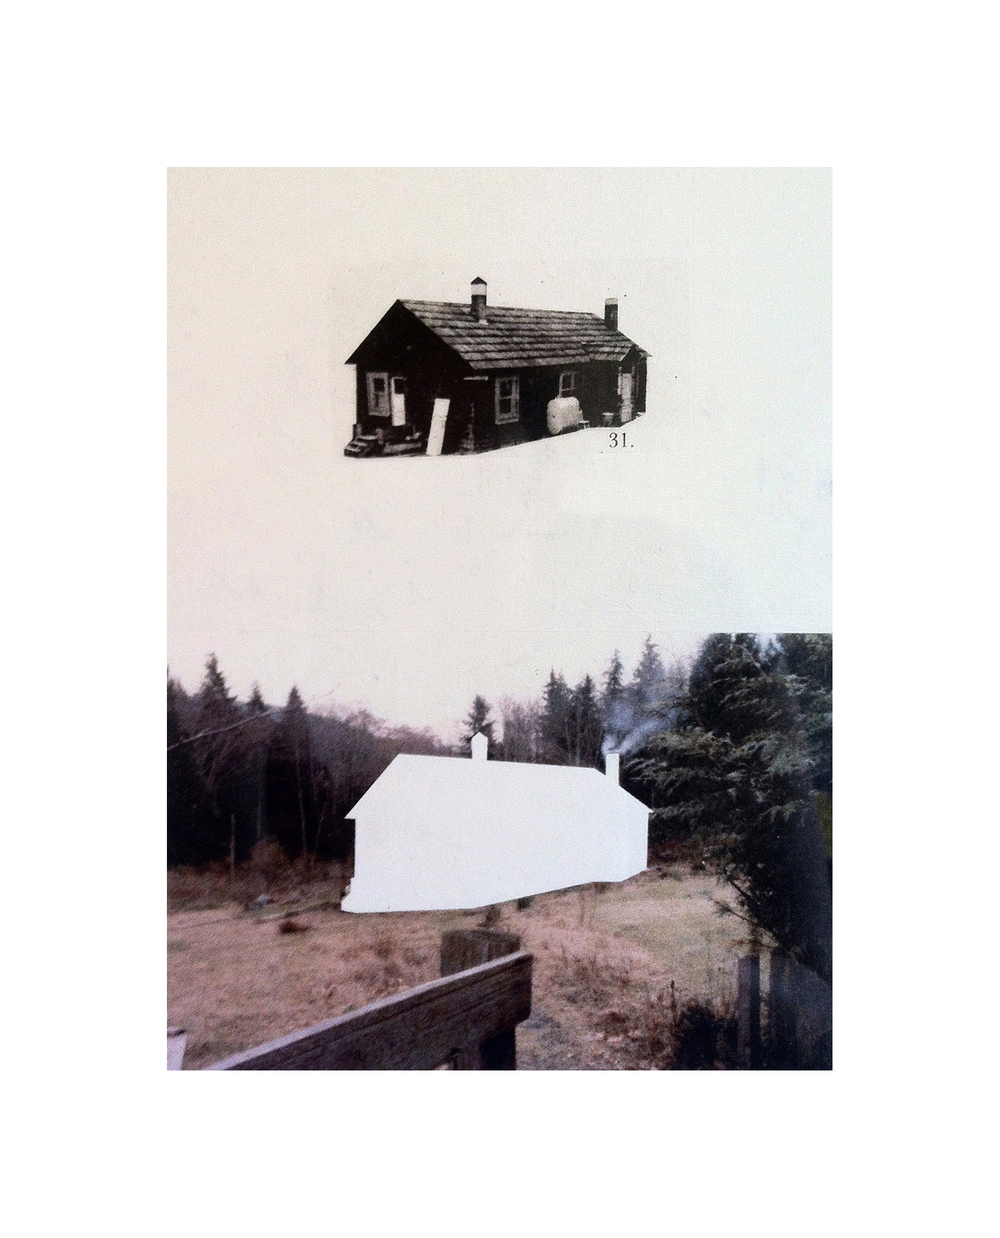 "Cabin Cutouts: Harding family homestead     Intaglio, digital, chine coll  é       15""x11"" 2013"